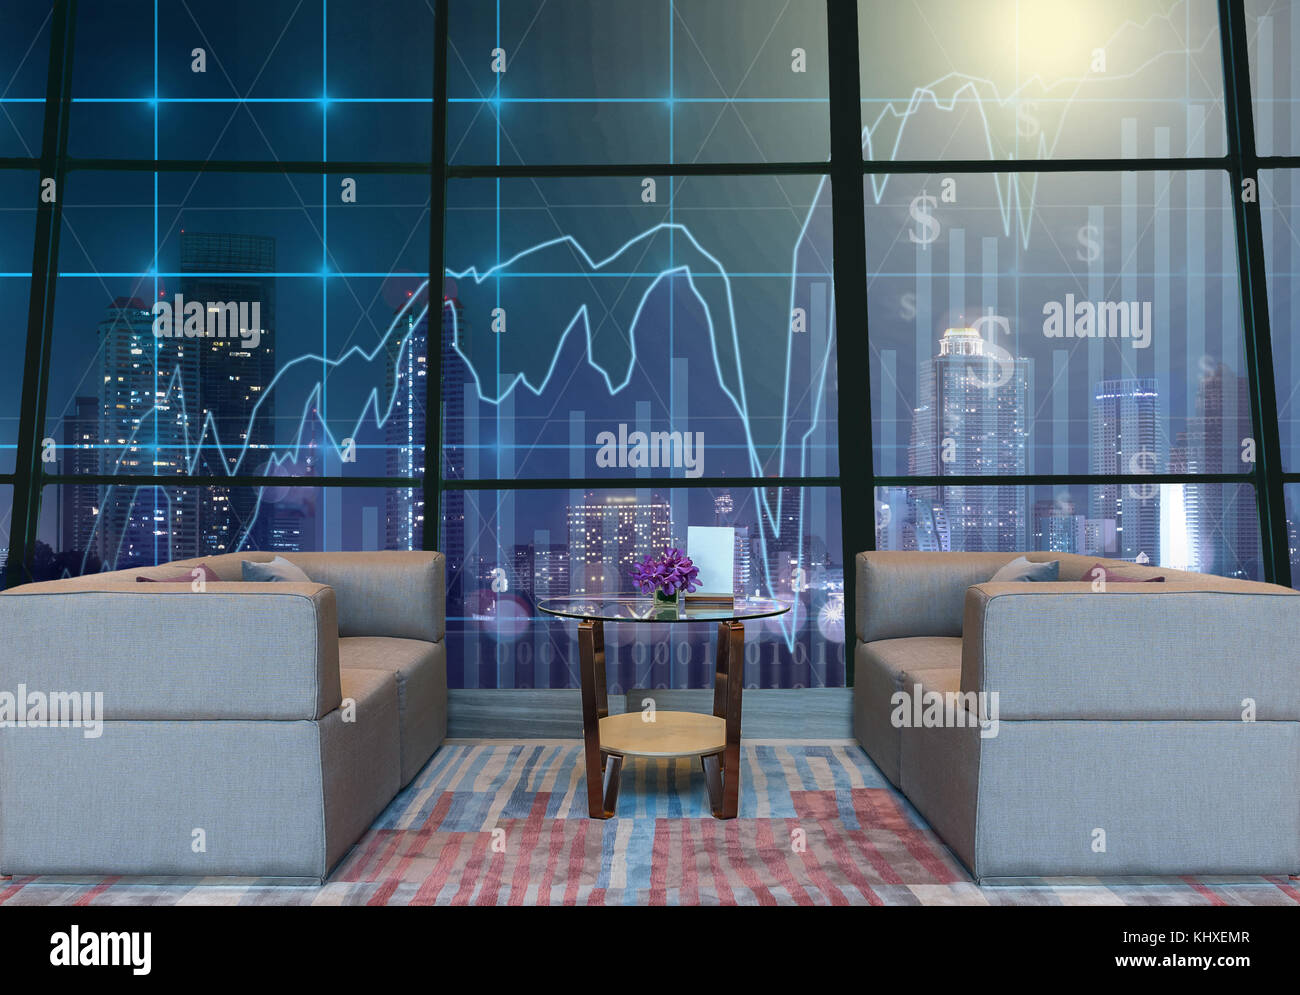 Lobby area of a hotel which can see Trading graph on the cityscape at night background,Business financial concept - Stock Image